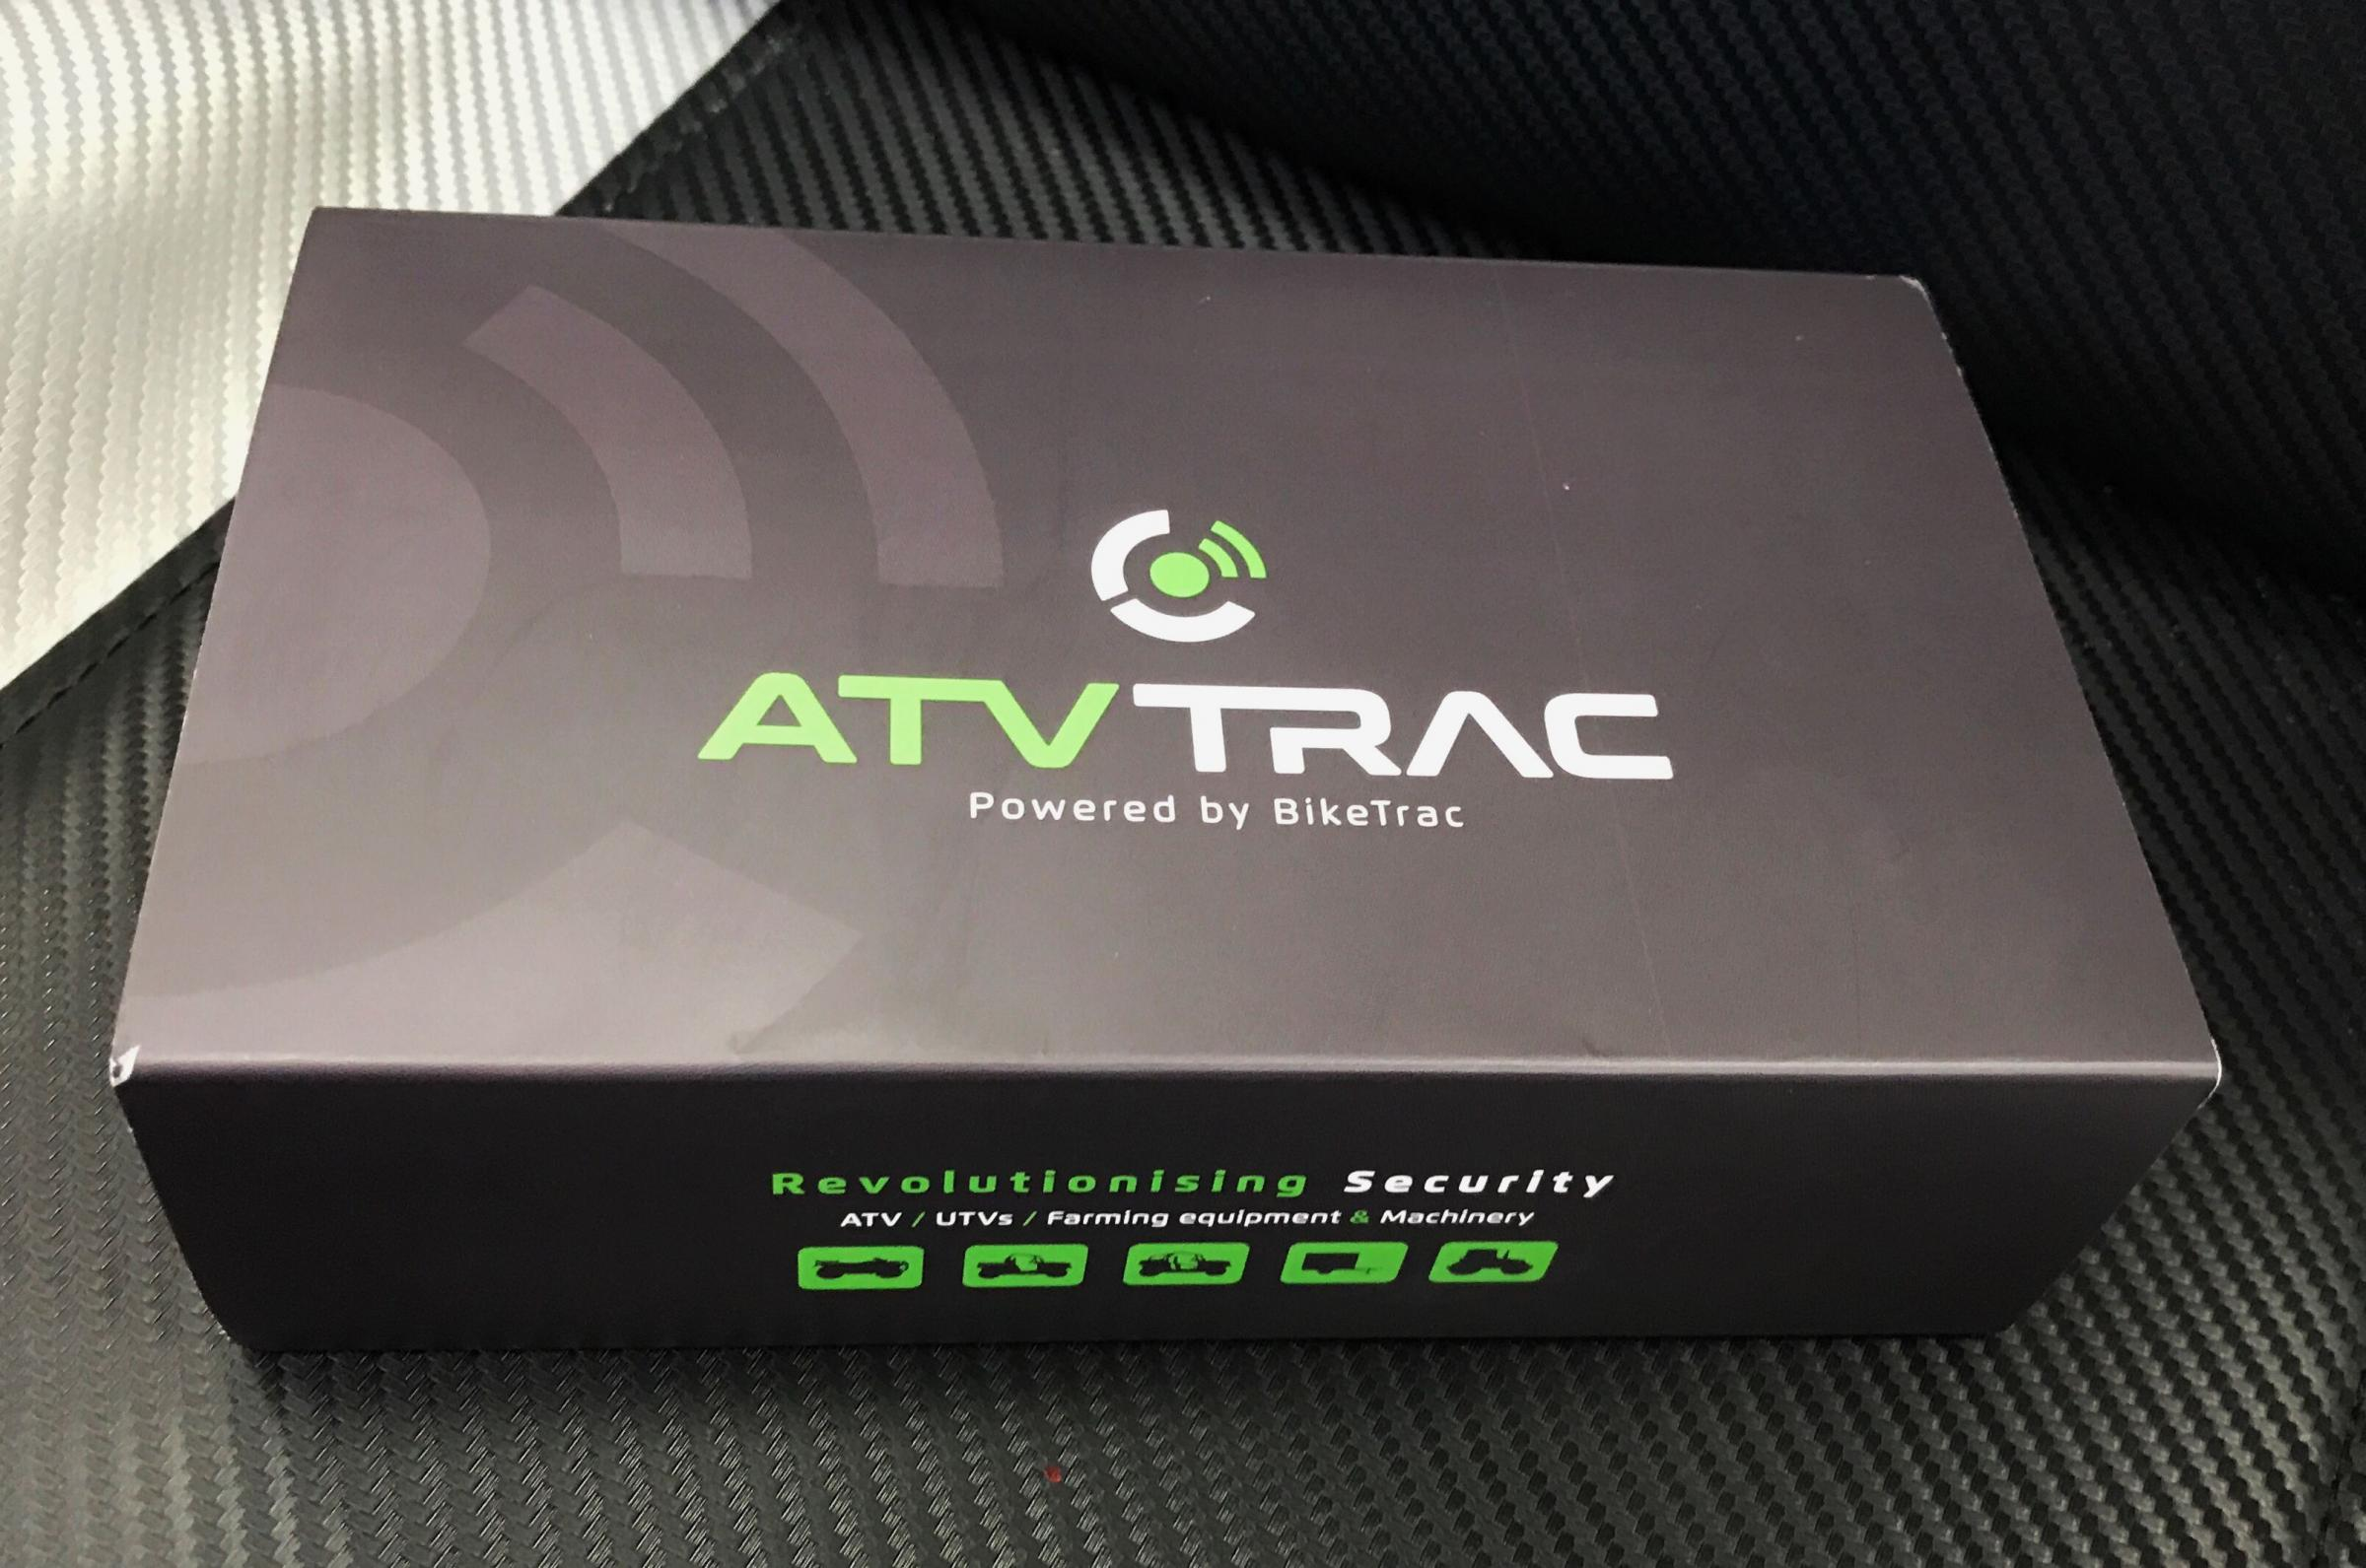 It's a simple little device, but the ATVTrac kit can help reduce you insurance bills